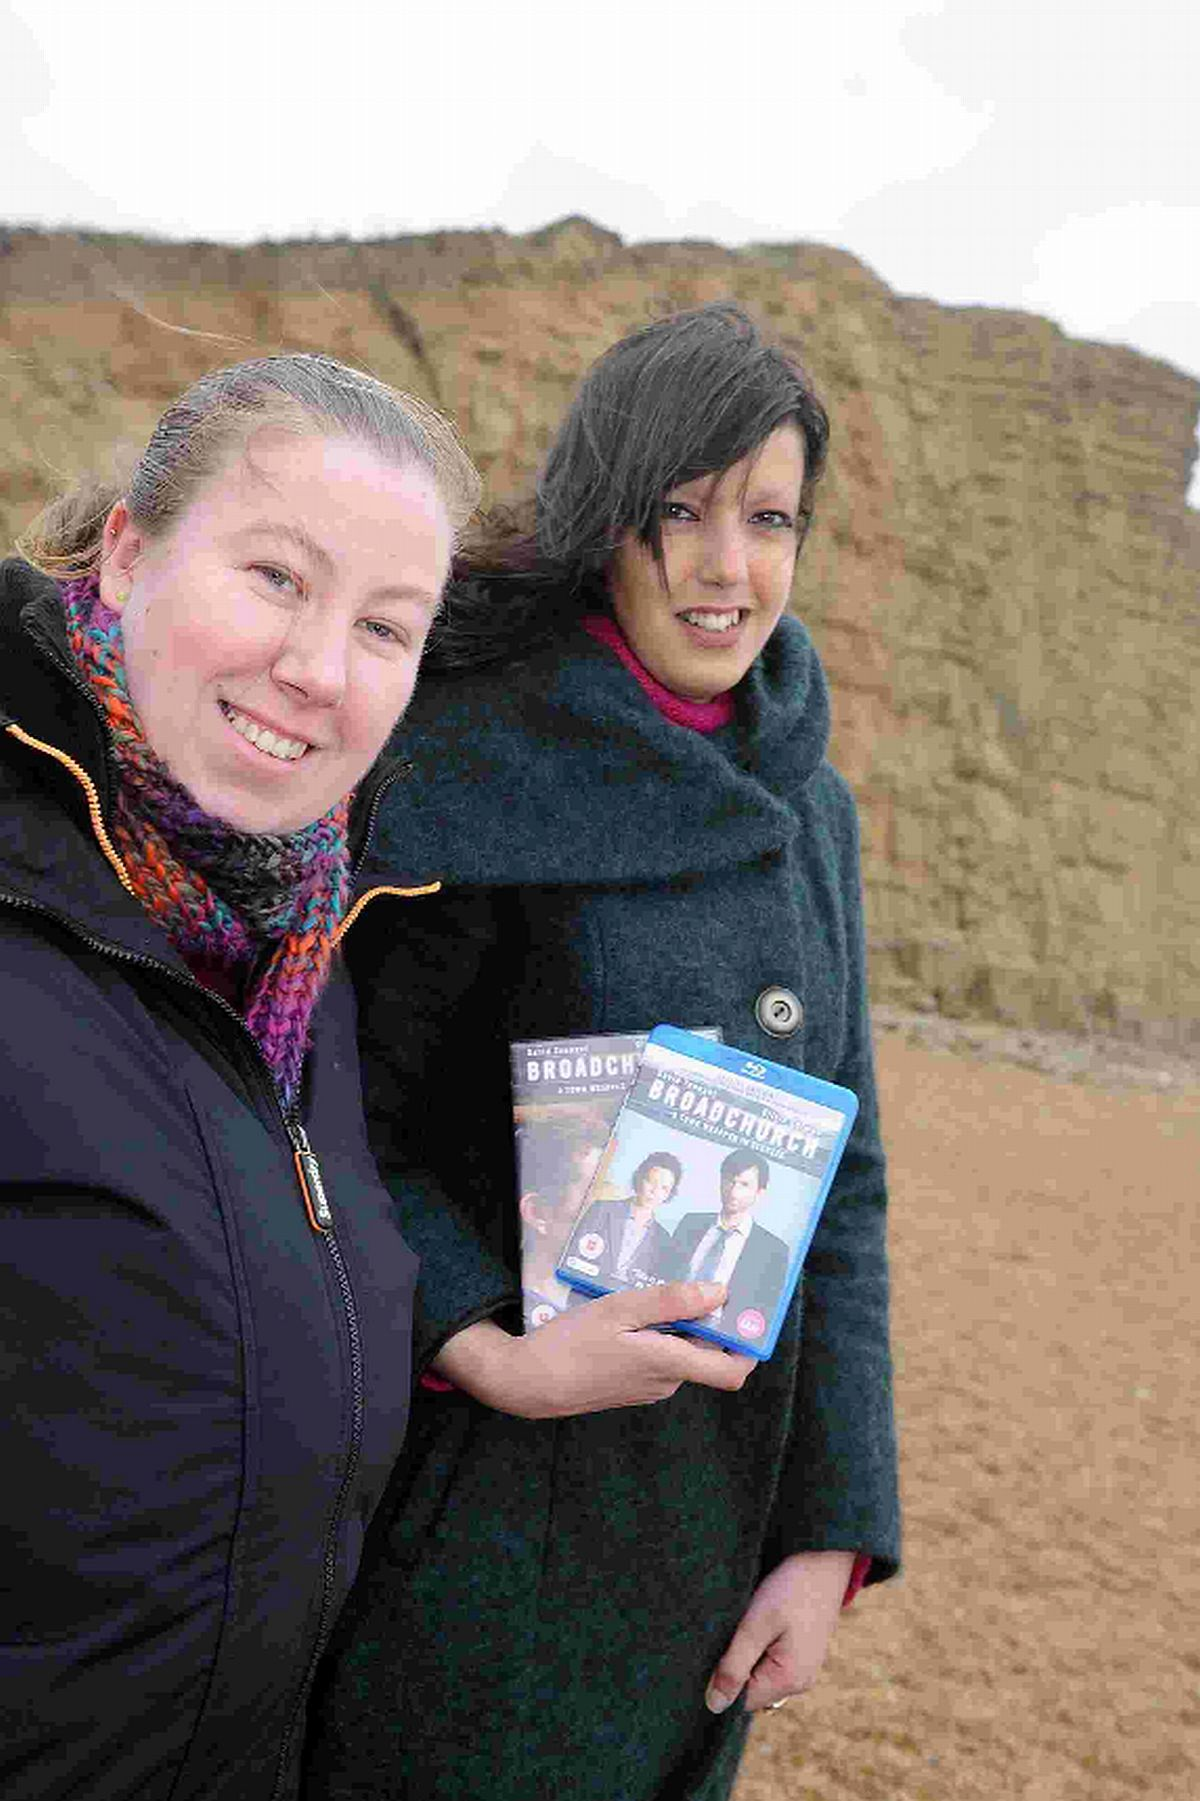 Broadchurch superfans to hold anniversary 'convention weekend'